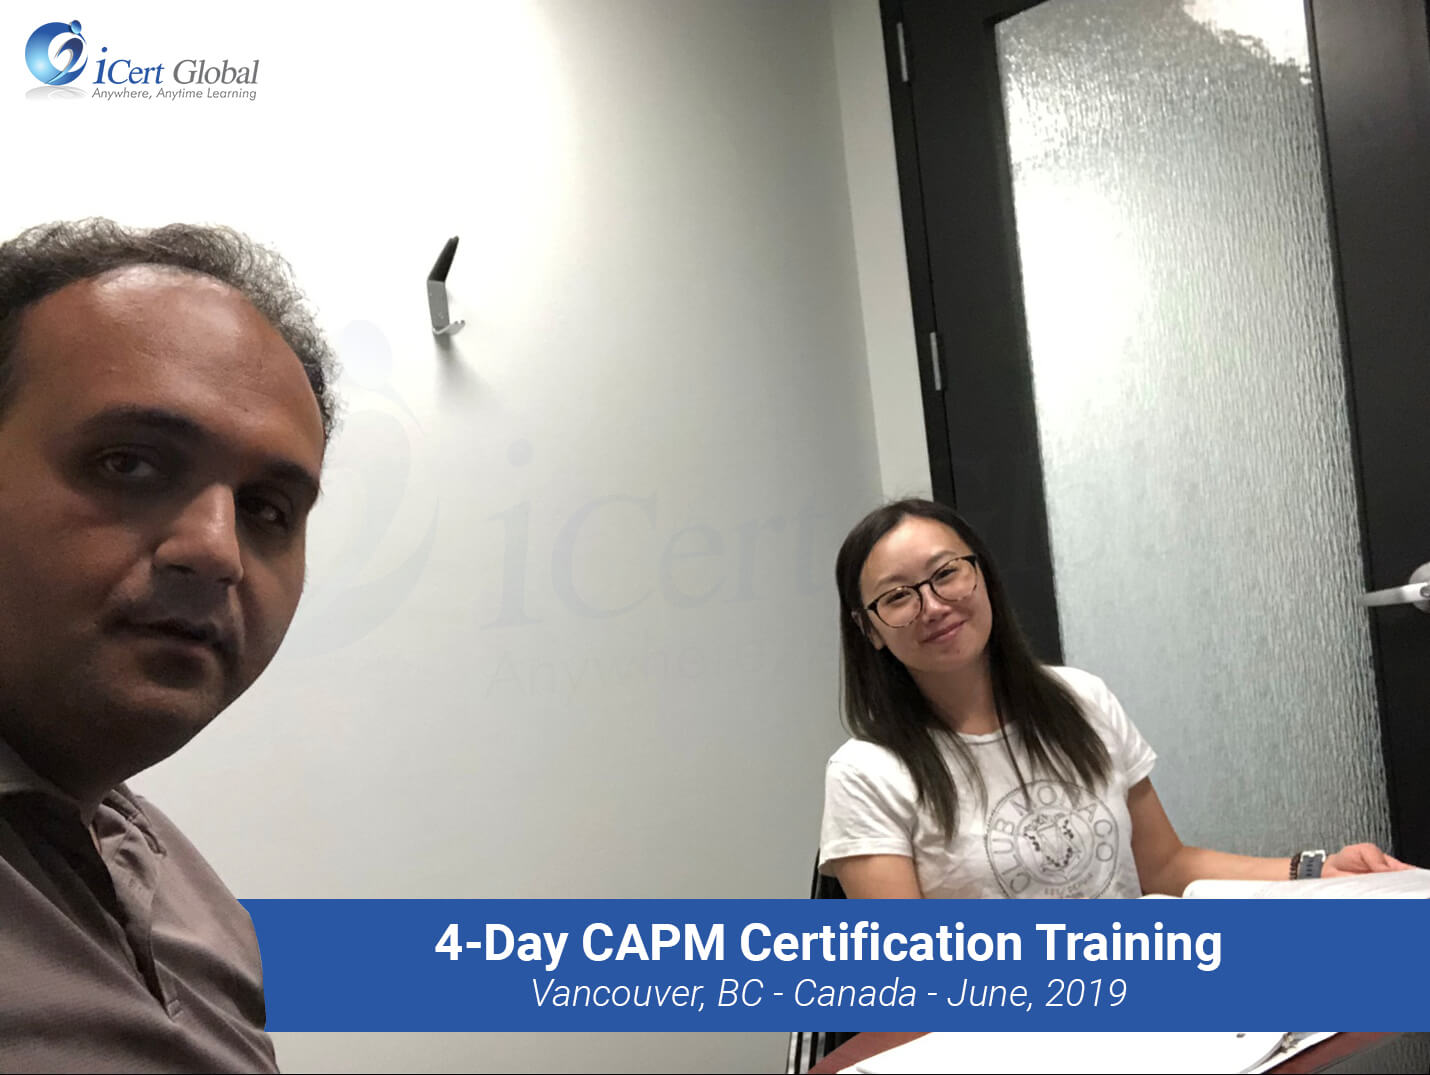 CAPM Certification Training Classroom Course in Vancouver, BC, Canada - June 2019